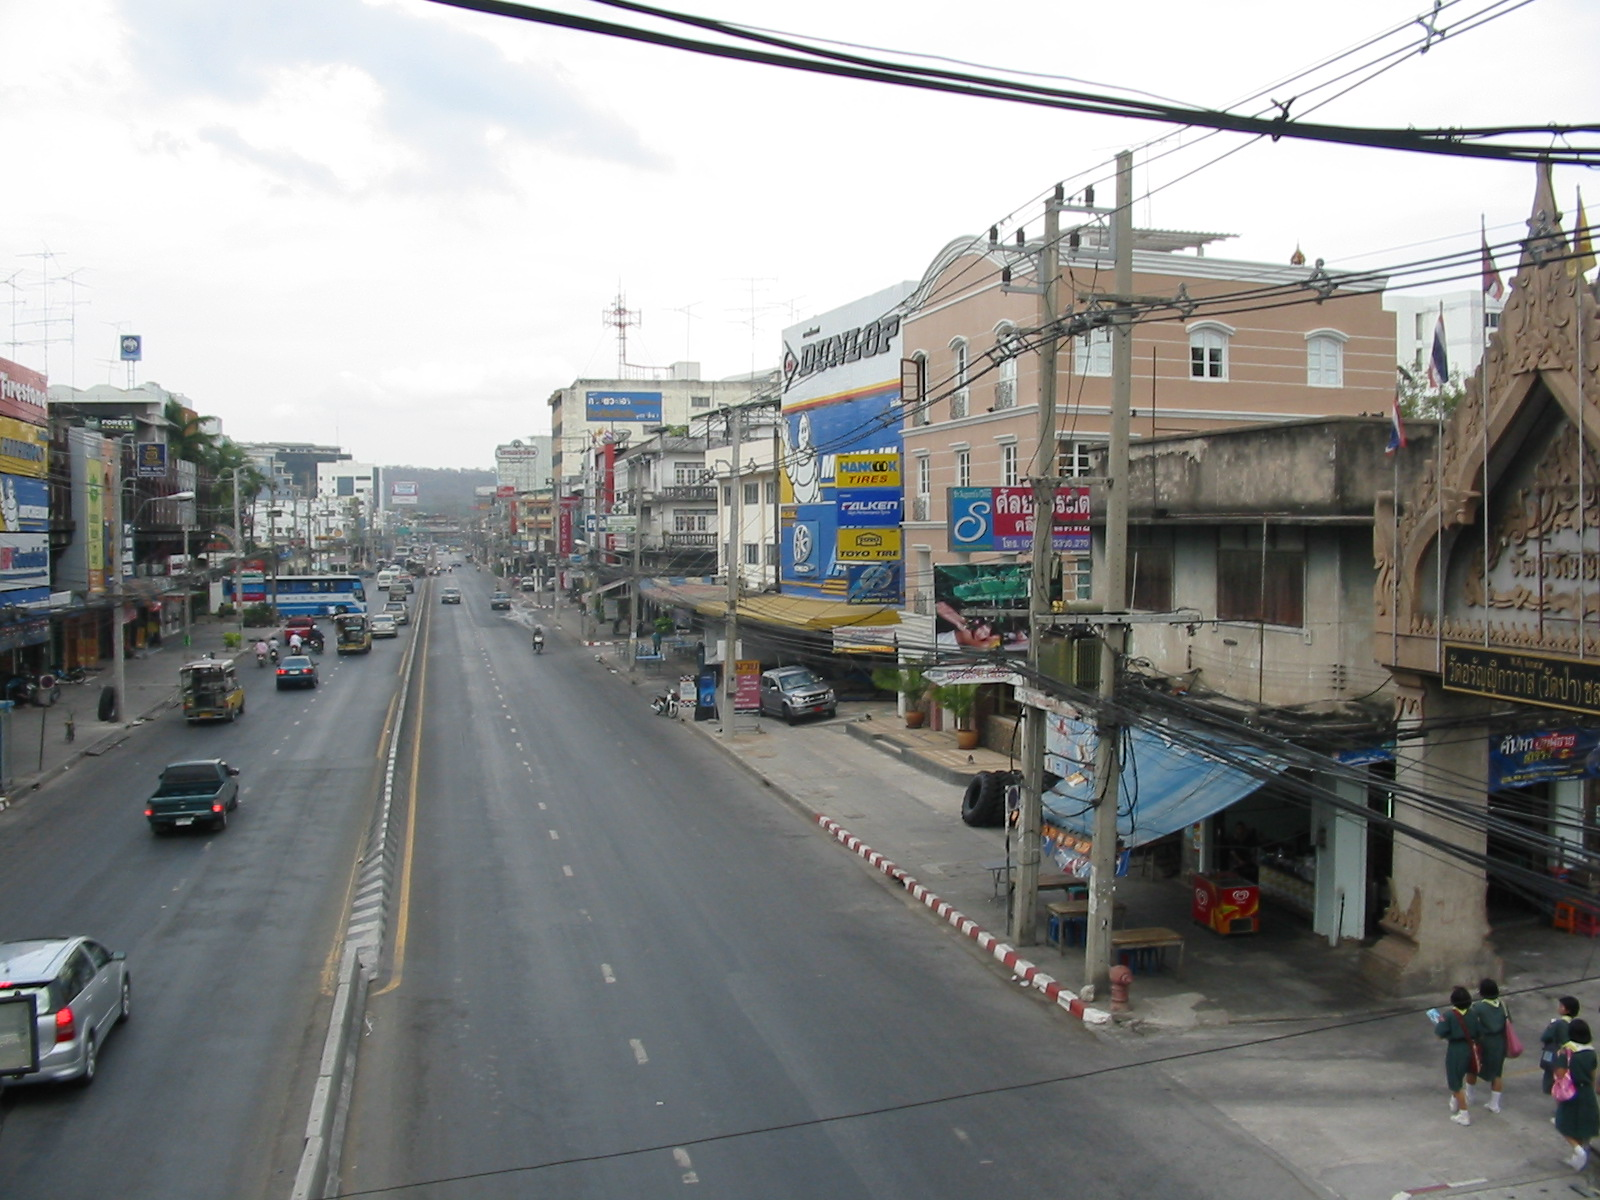 Sukhumvit Road in Chonburi, Thailand. The Suporn Clinic is the four-storey building on the right